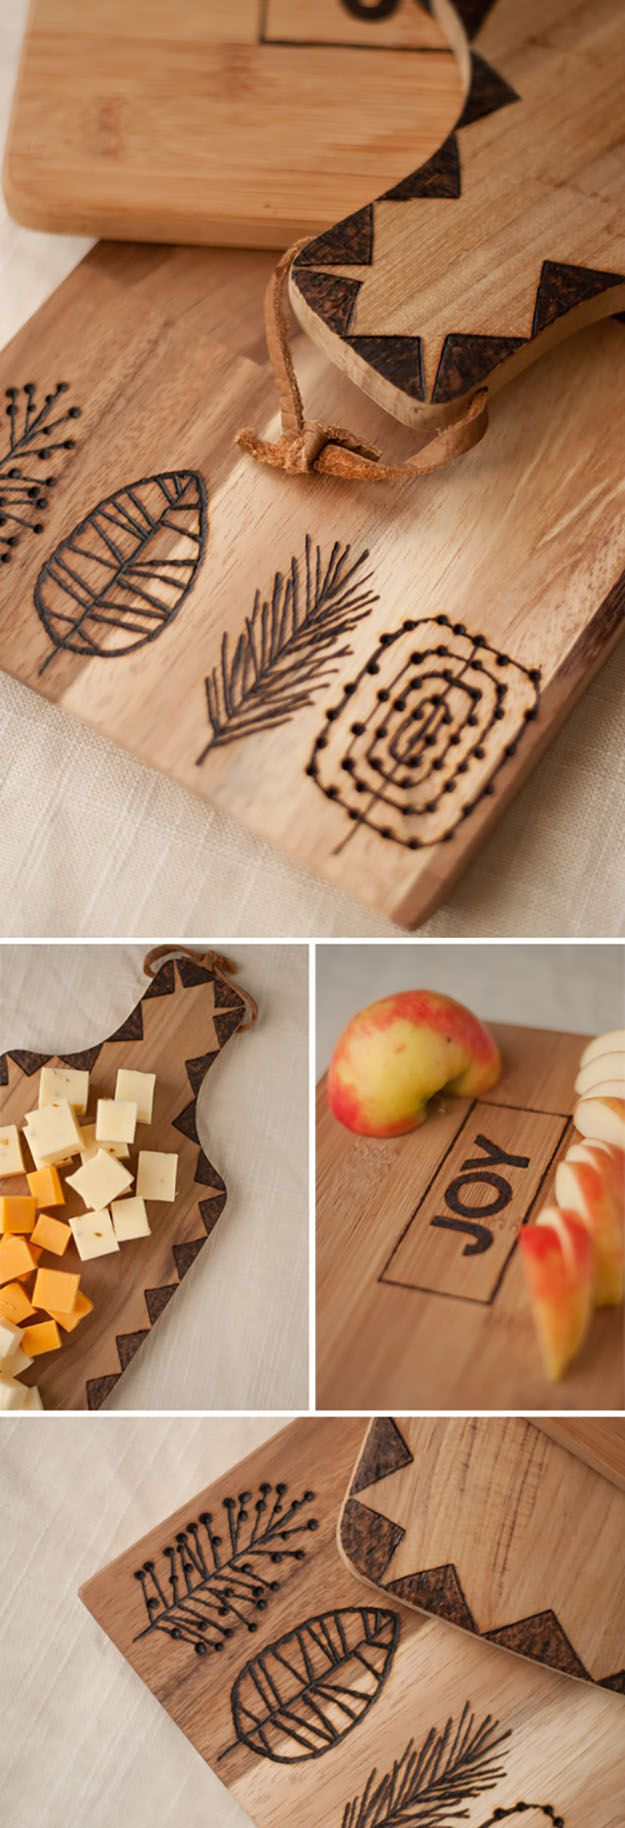 diy kitchen ideas DIY Gifts for Friends Family DIY Kitchen Ideas Etched Wooden Cutting Boards